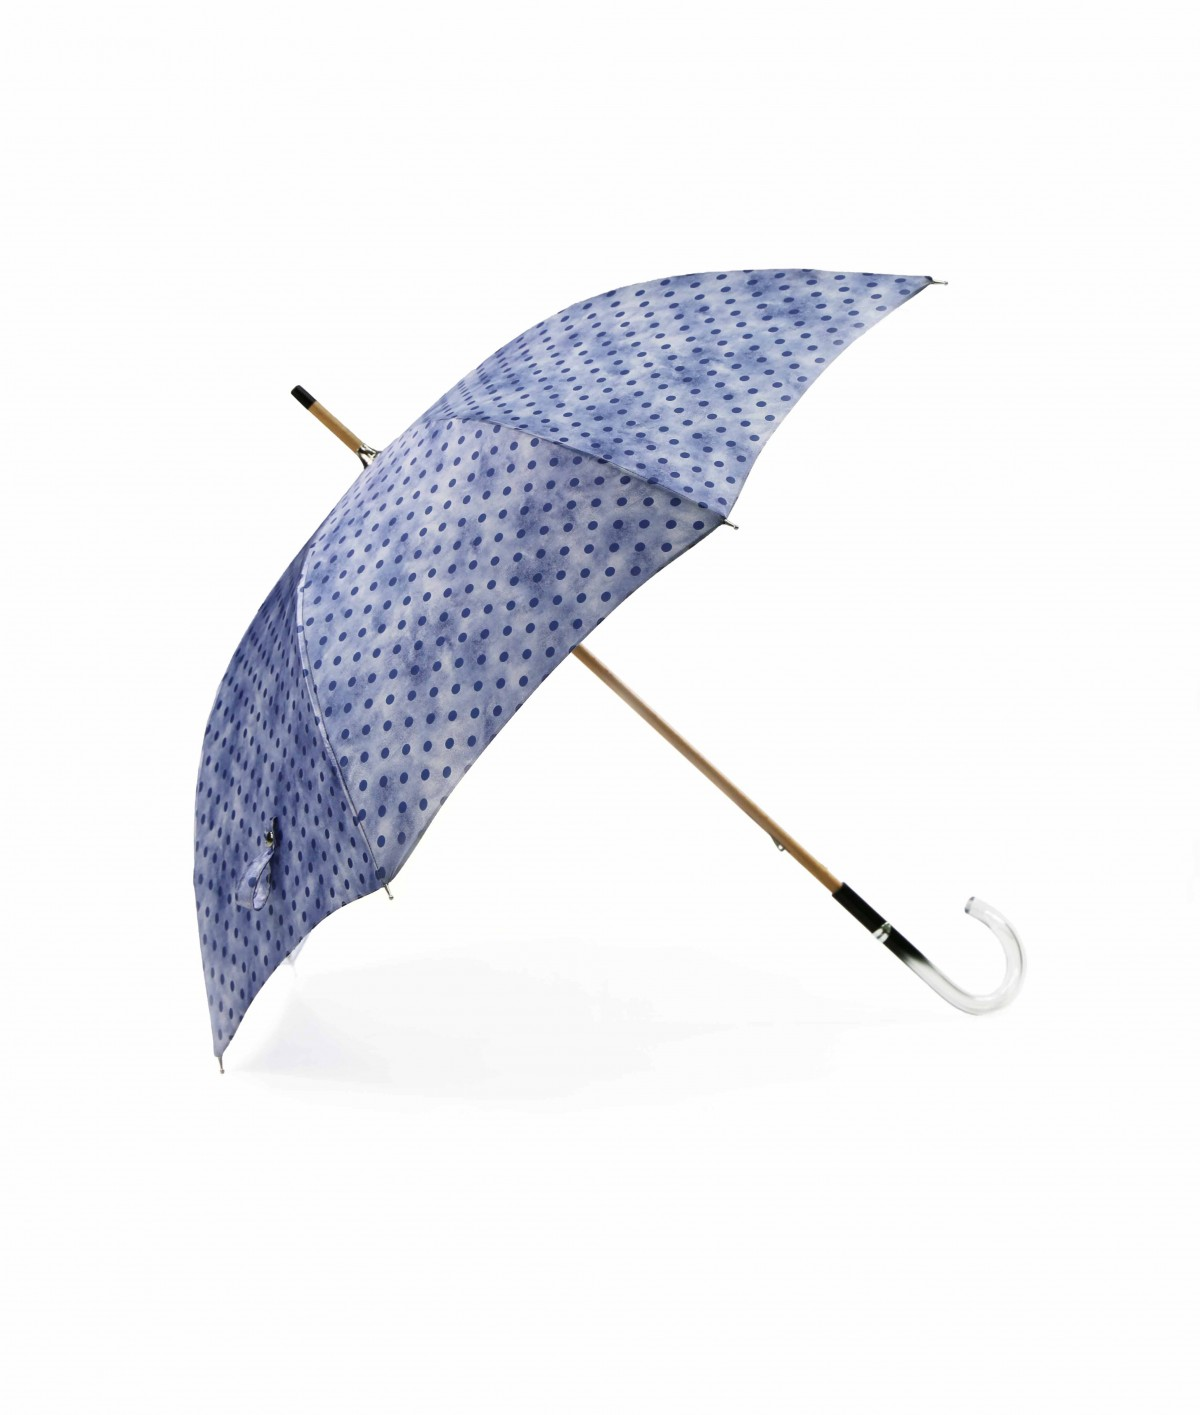 → Fancy Printed Satin Umbrella - Long Manual N°12 - Made in France by Maison Pierre Vaux French Umbrella Manufacturer